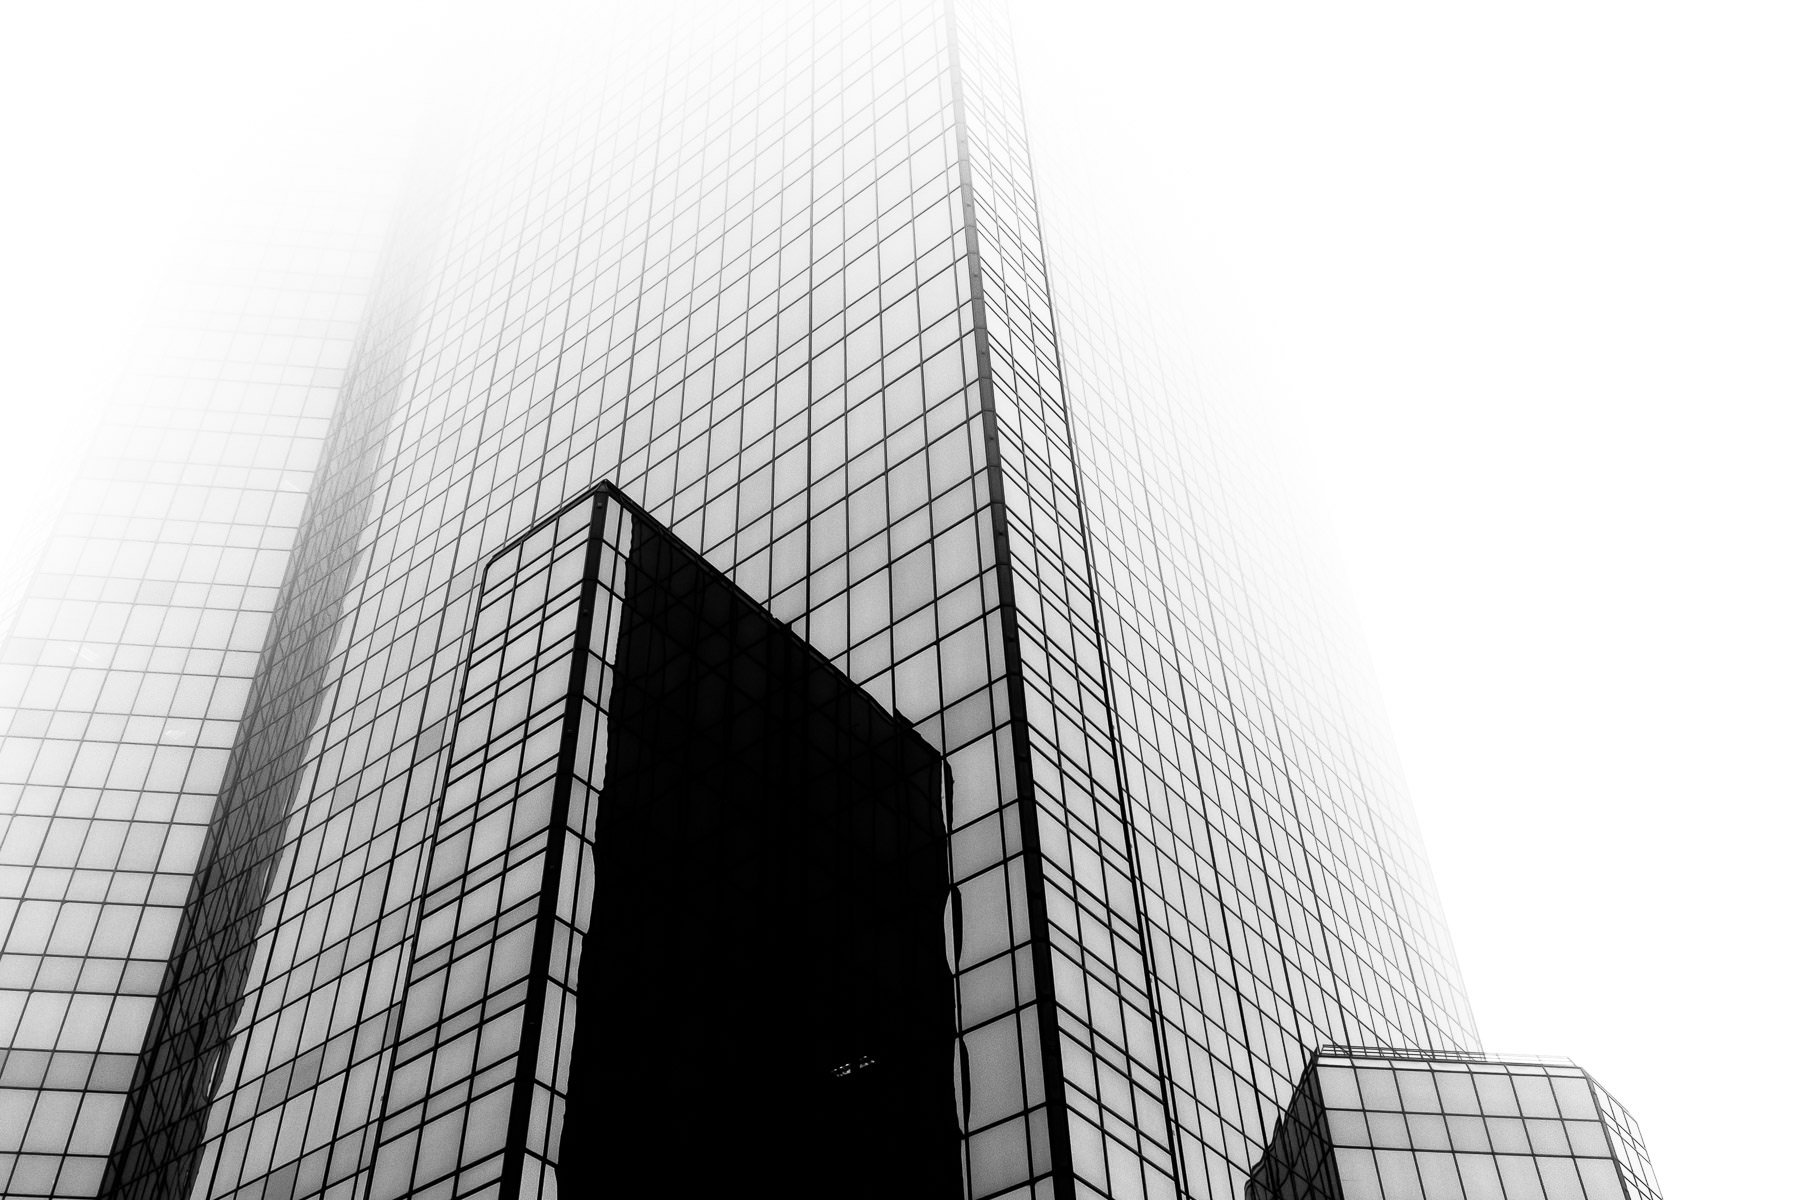 One of the skyscrapers of Fort Worth, Texas' City Center Towers Complex rises into the foggy North Texas sky.